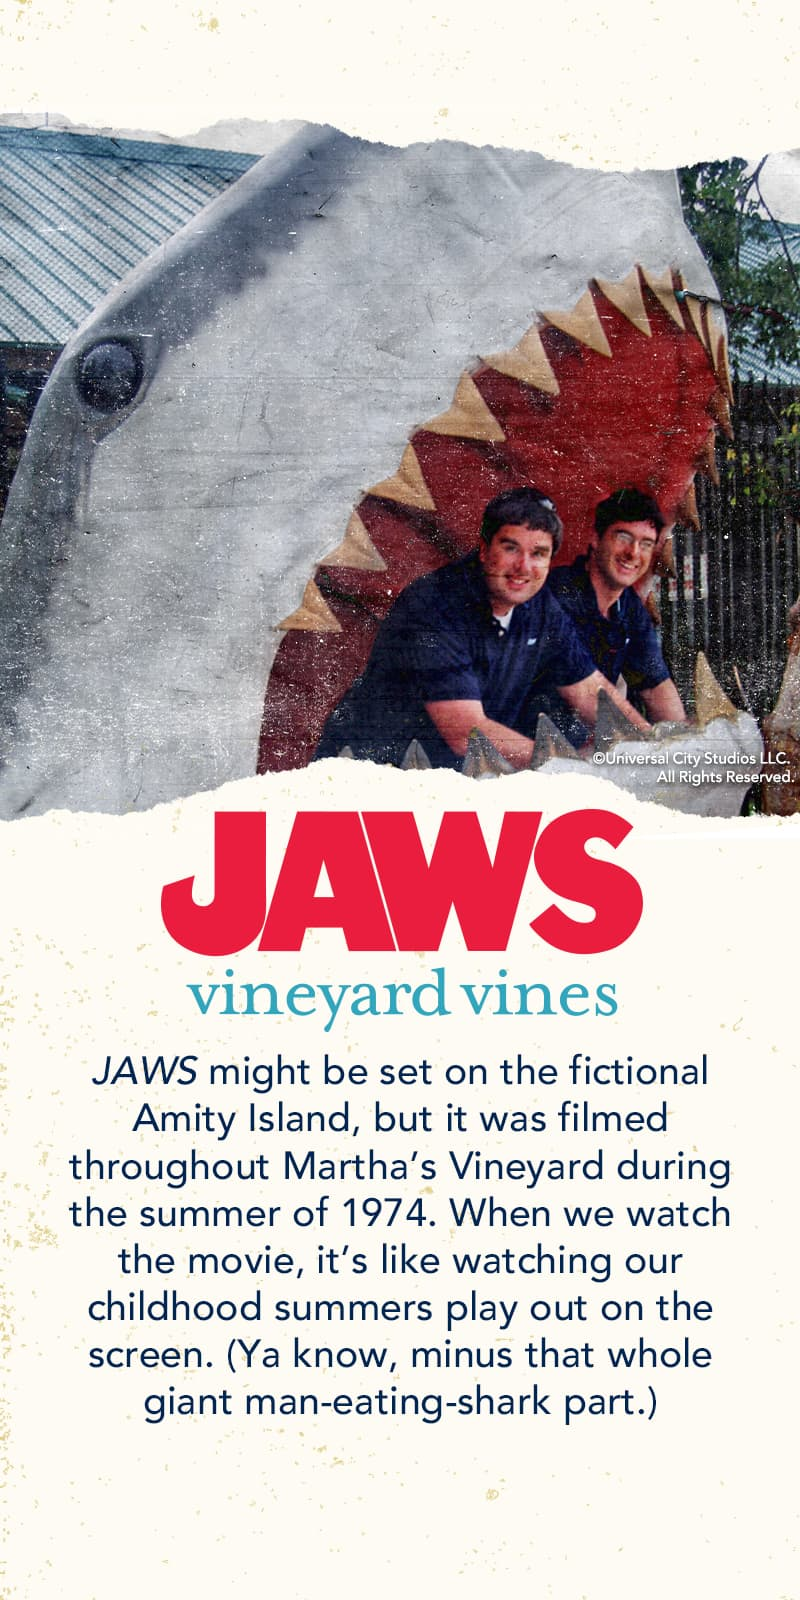 When we were growing up on the Vineyard it seemed like we were surrounded by JAWS.